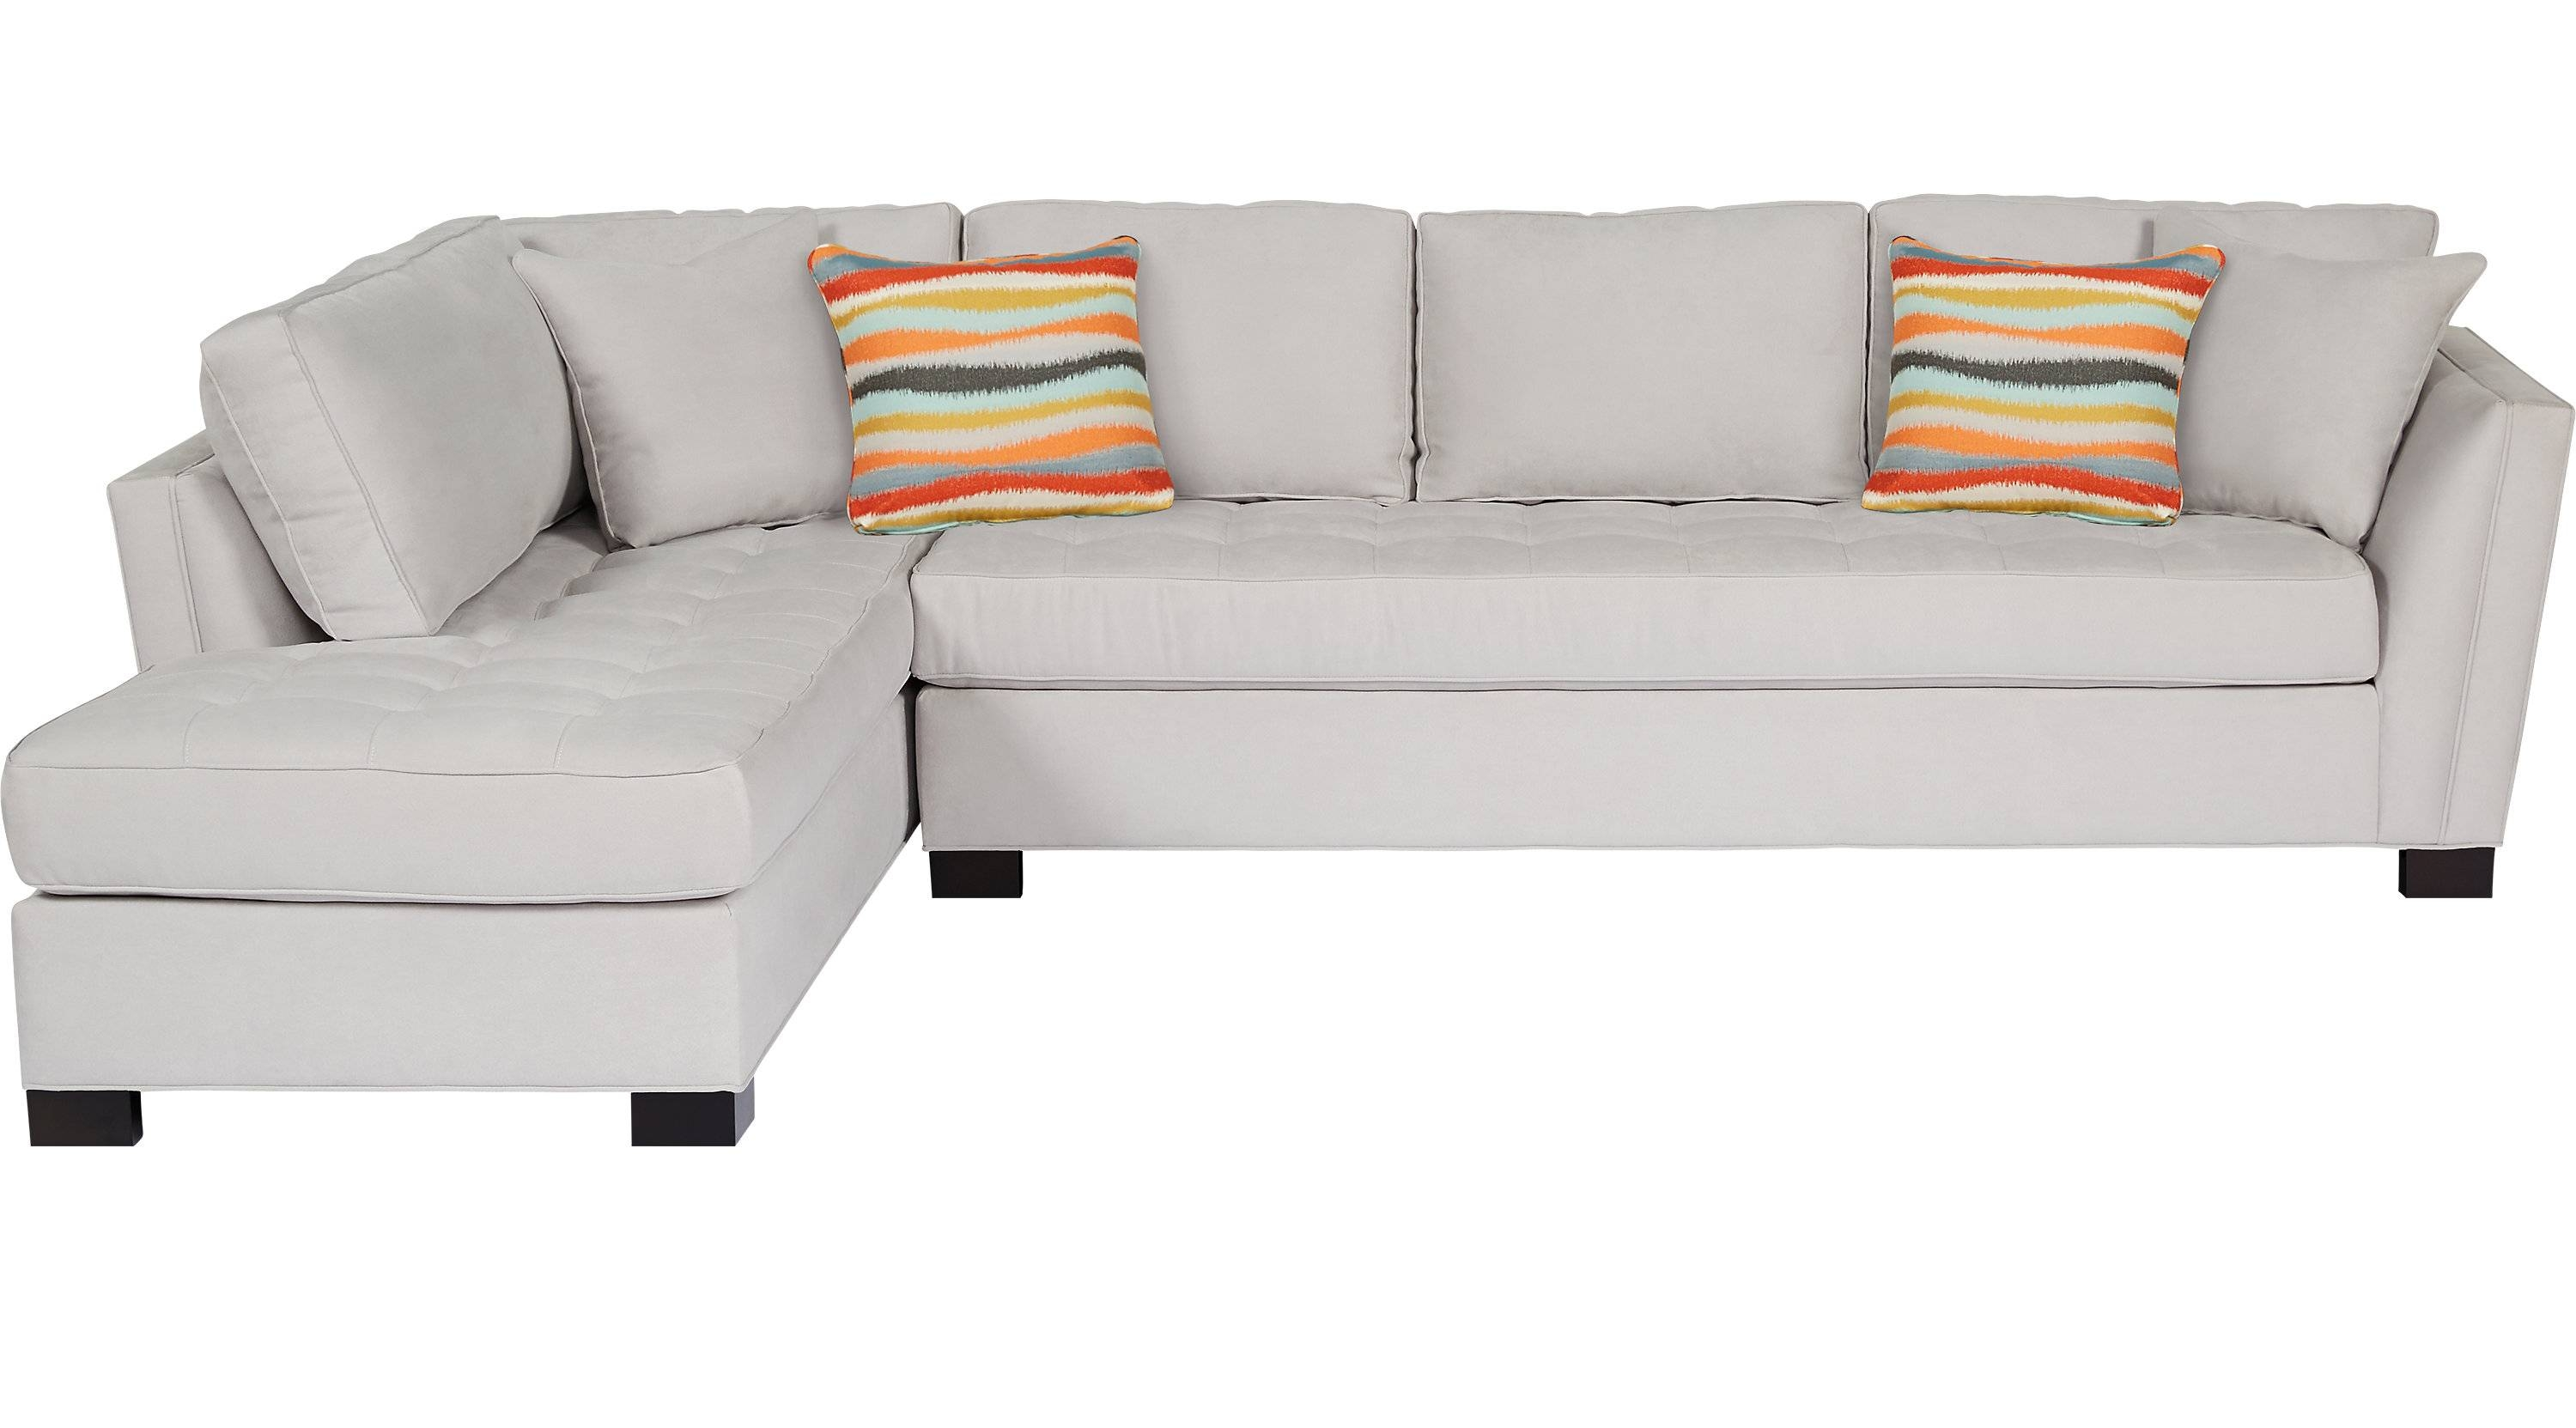 Living Room: Using Elegant Cindy Crawford Sectional Sofa For Throughout Cindy Crawford Metropolis Sofas (View 10 of 15)